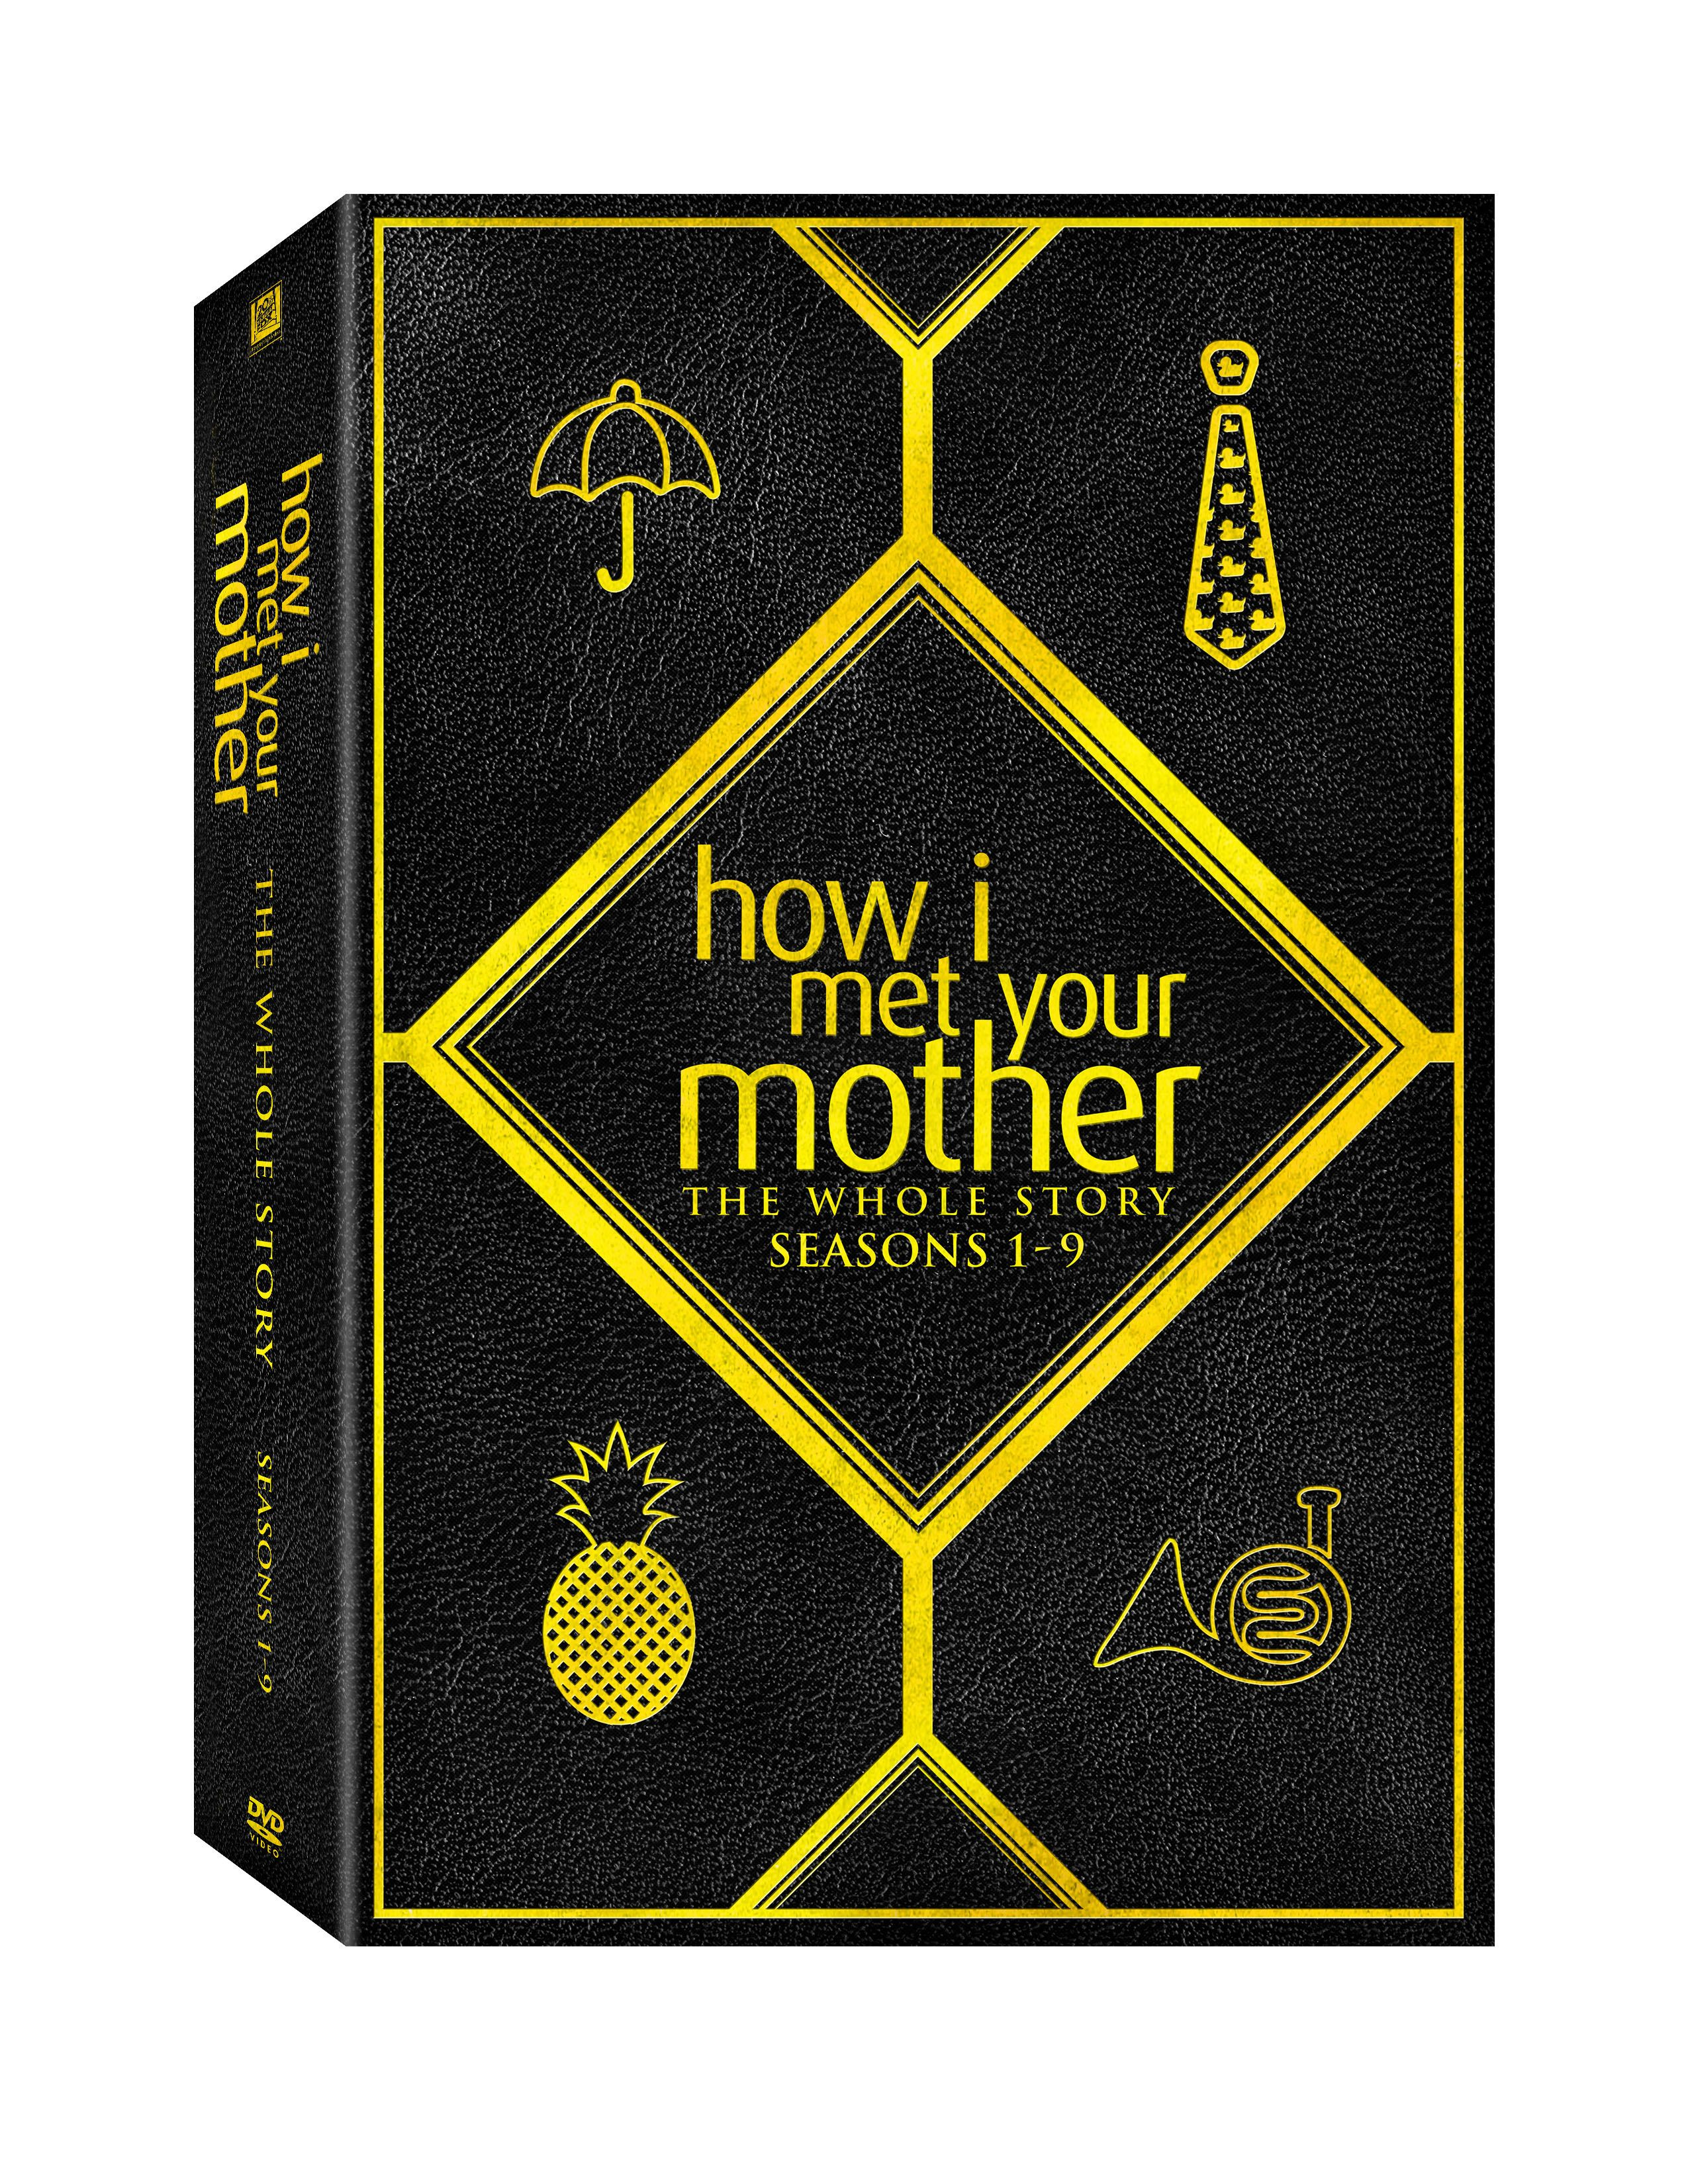 how i met your mother complete series dvd release date and. Black Bedroom Furniture Sets. Home Design Ideas